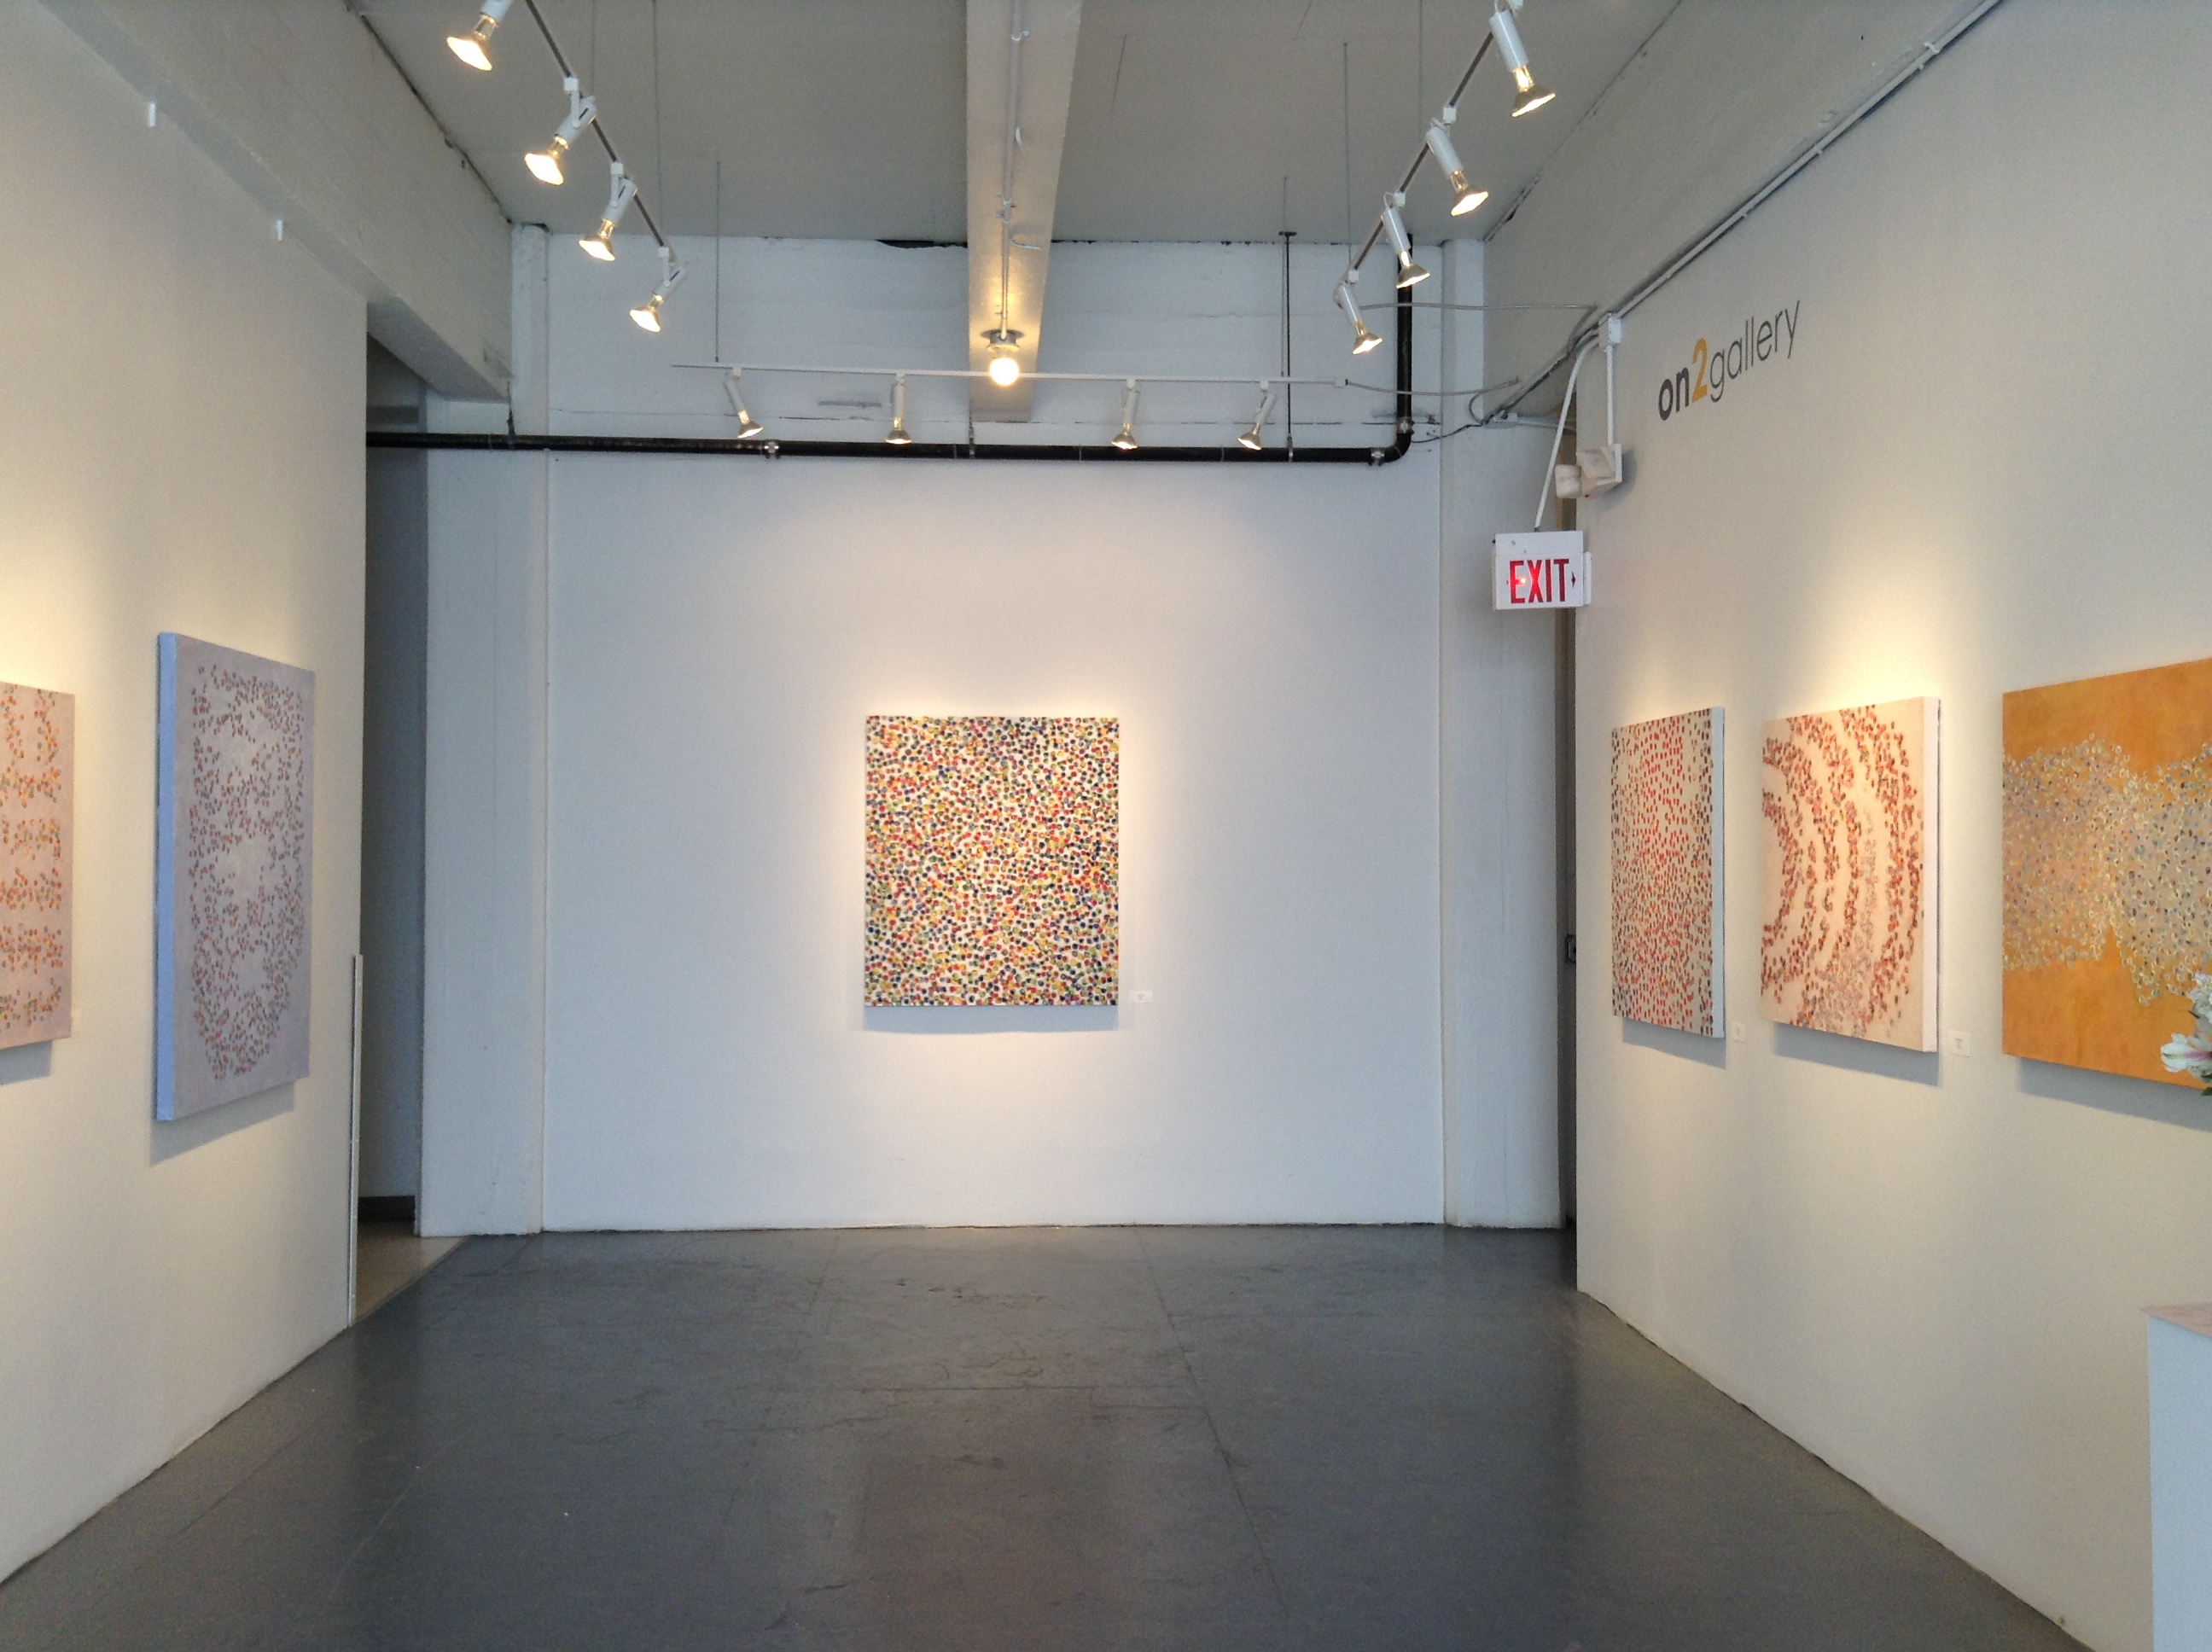 Installation view, on2gallery, California Building, ME Minneapolis